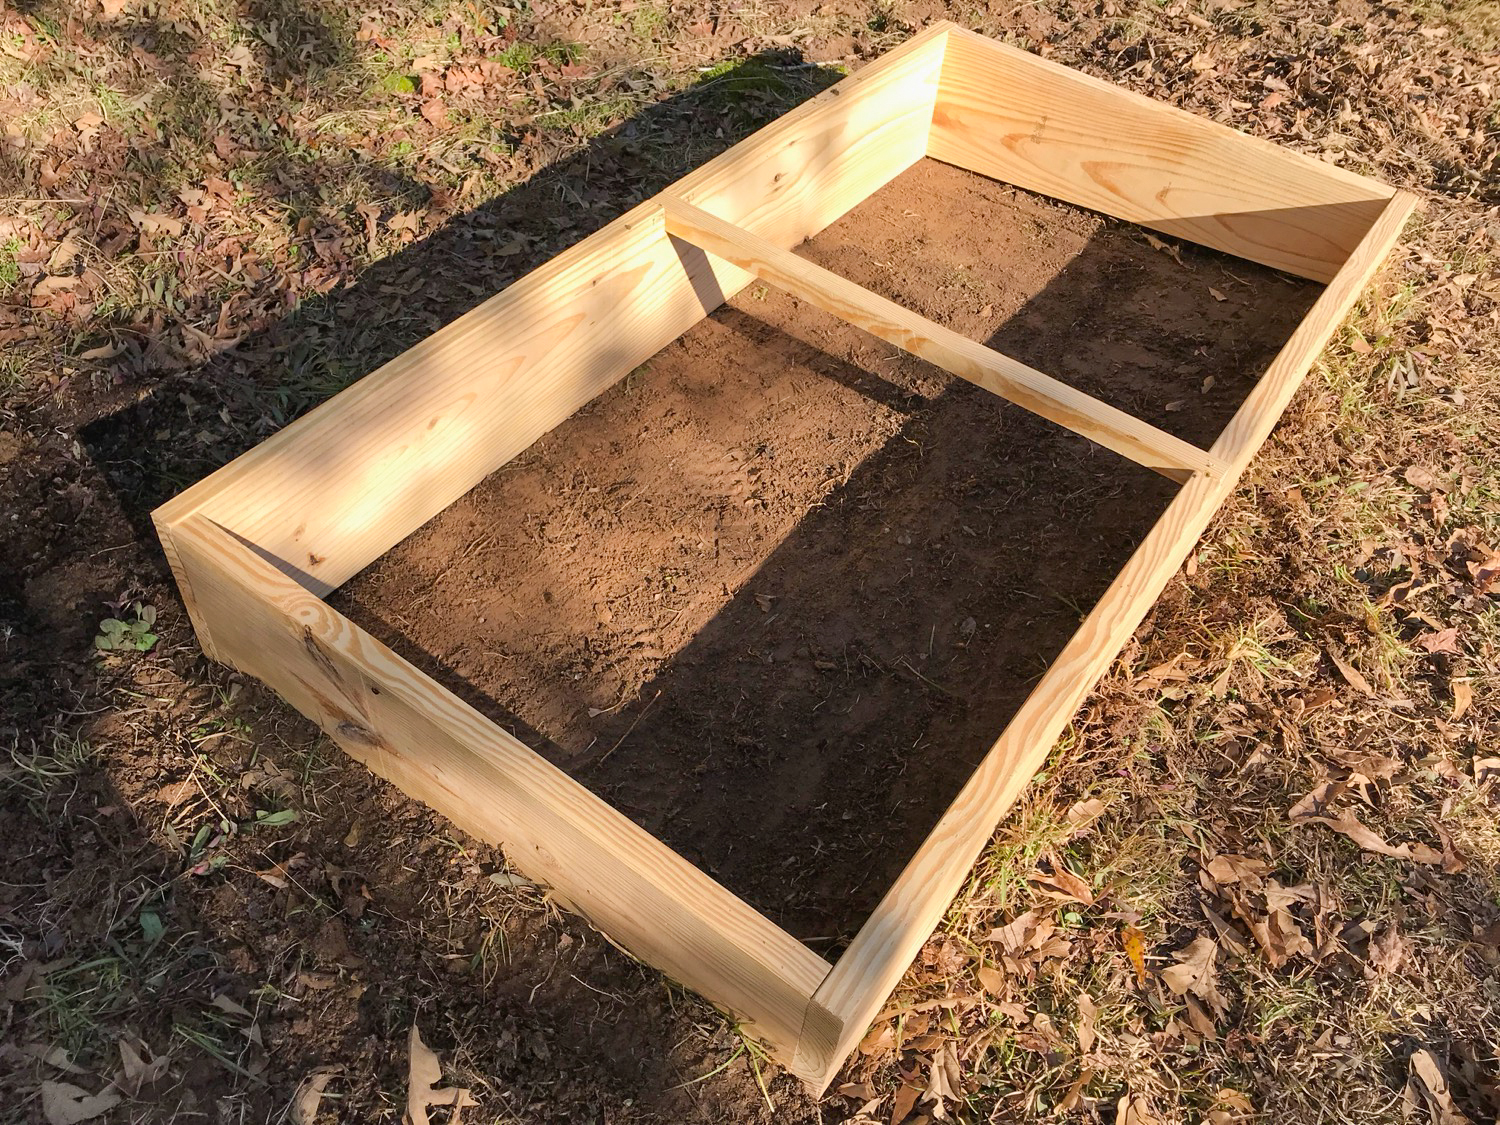 I constructed the box out of two ten-foot long 2 × 12's cut into two pieces—6 ft long for the front and back and 3 ft long for the sides. To create a slope on the top of the box to maximize sun exposure, I cut 4 in off one of the 6 ft boards to make it 8 in tall, and for the side boards, I cut a slant (1.3 in drop per 1 ft board length). Once constructed on the ground, the cold frame is turned over so that the front and back boards have a slight slant in one direction and so that the top is flush with the light. Notches made in the middle front and back allow the installation of a support beam.